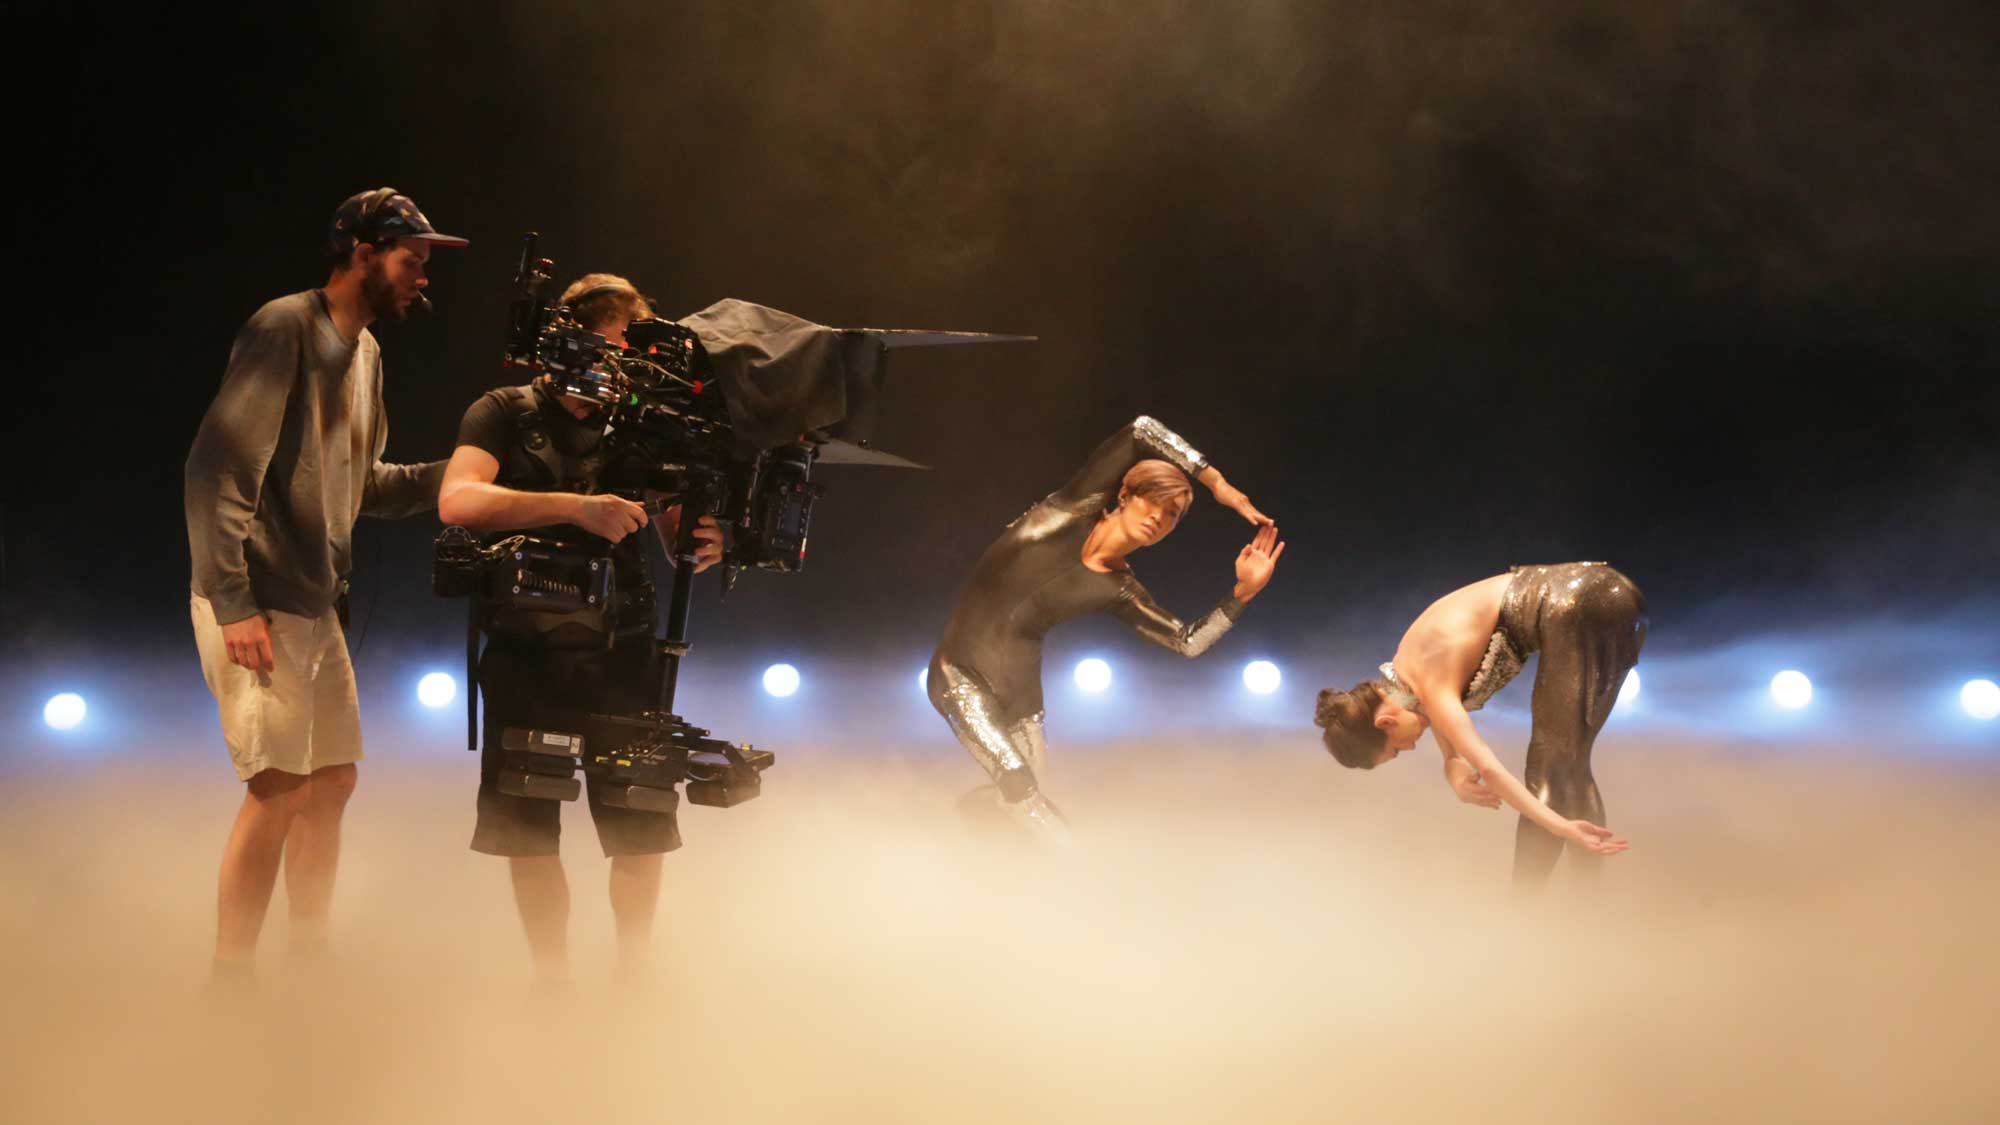 two camera operators shooting two dancers standing in fog